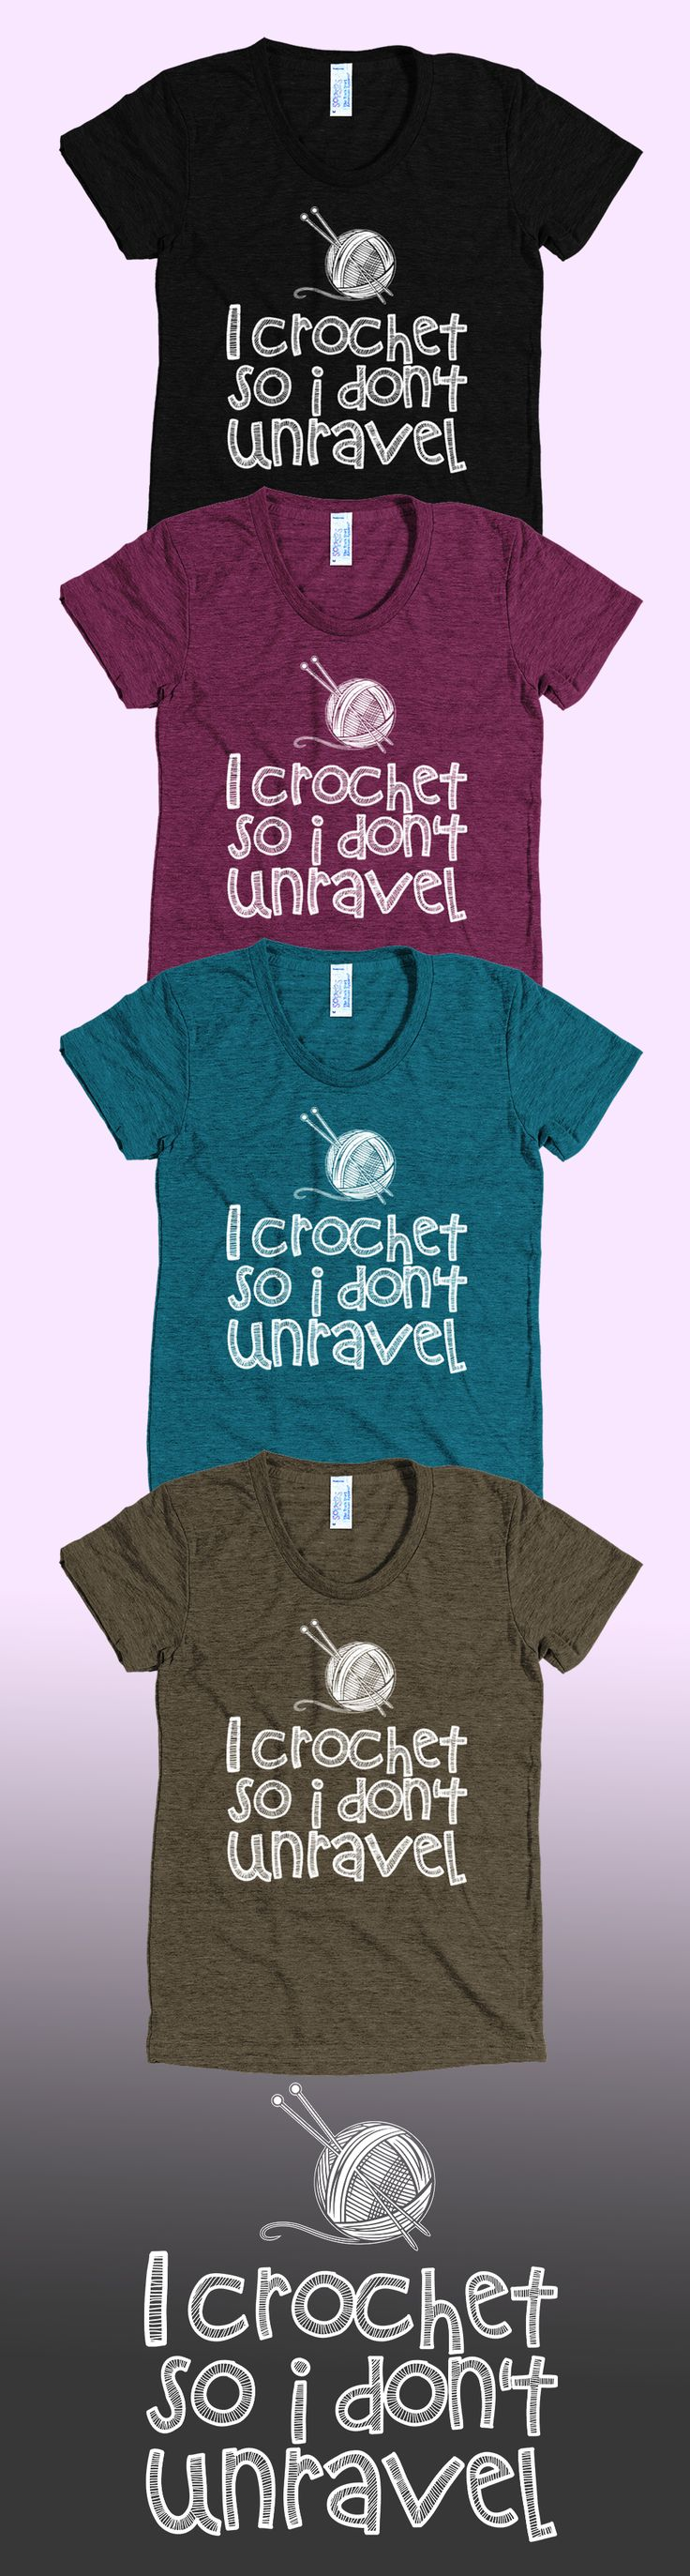 Love crocheting and knitting? Check out this awesome crocheting t-shirt you will not find anywhere else. Not sold in stores and only 2 days left for free shipping! Grab yours or gift it to a friend, you will both love it